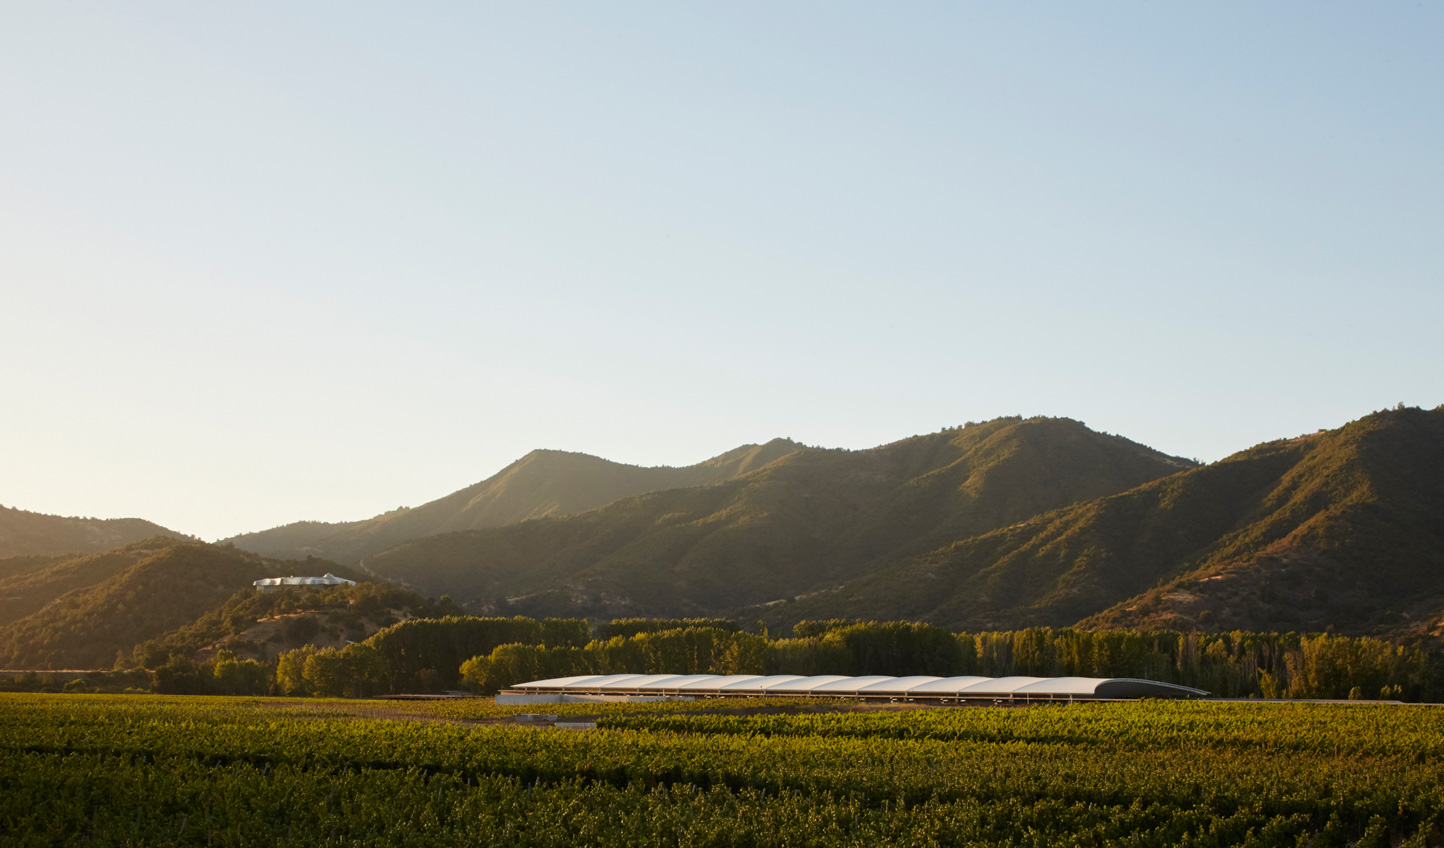 Head down to the vineyard and take a stroll through the vines